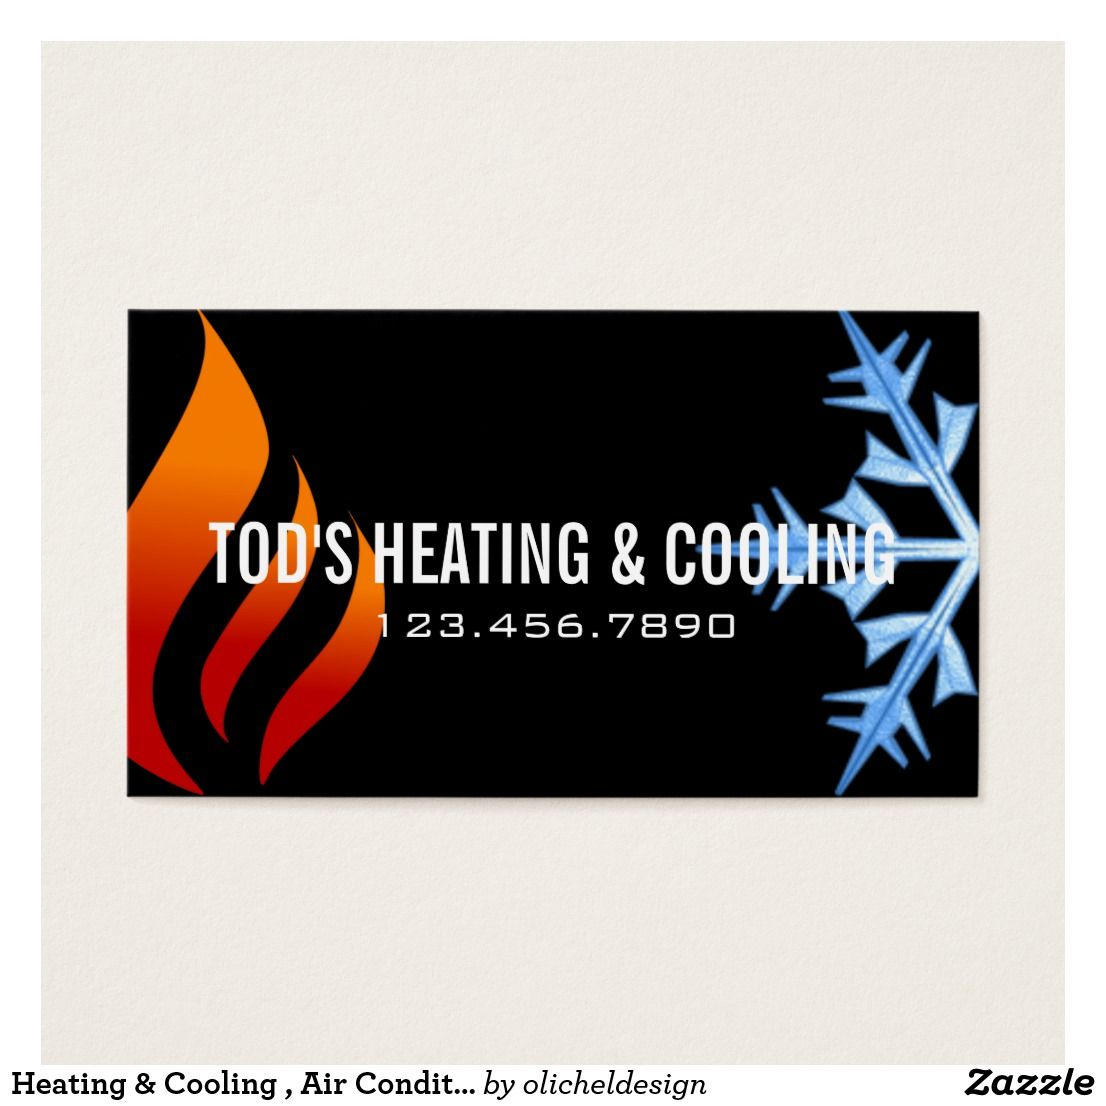 Heating cooling air conditioning hvac business card pinterest heating cooling air conditioning hvac business card reheart